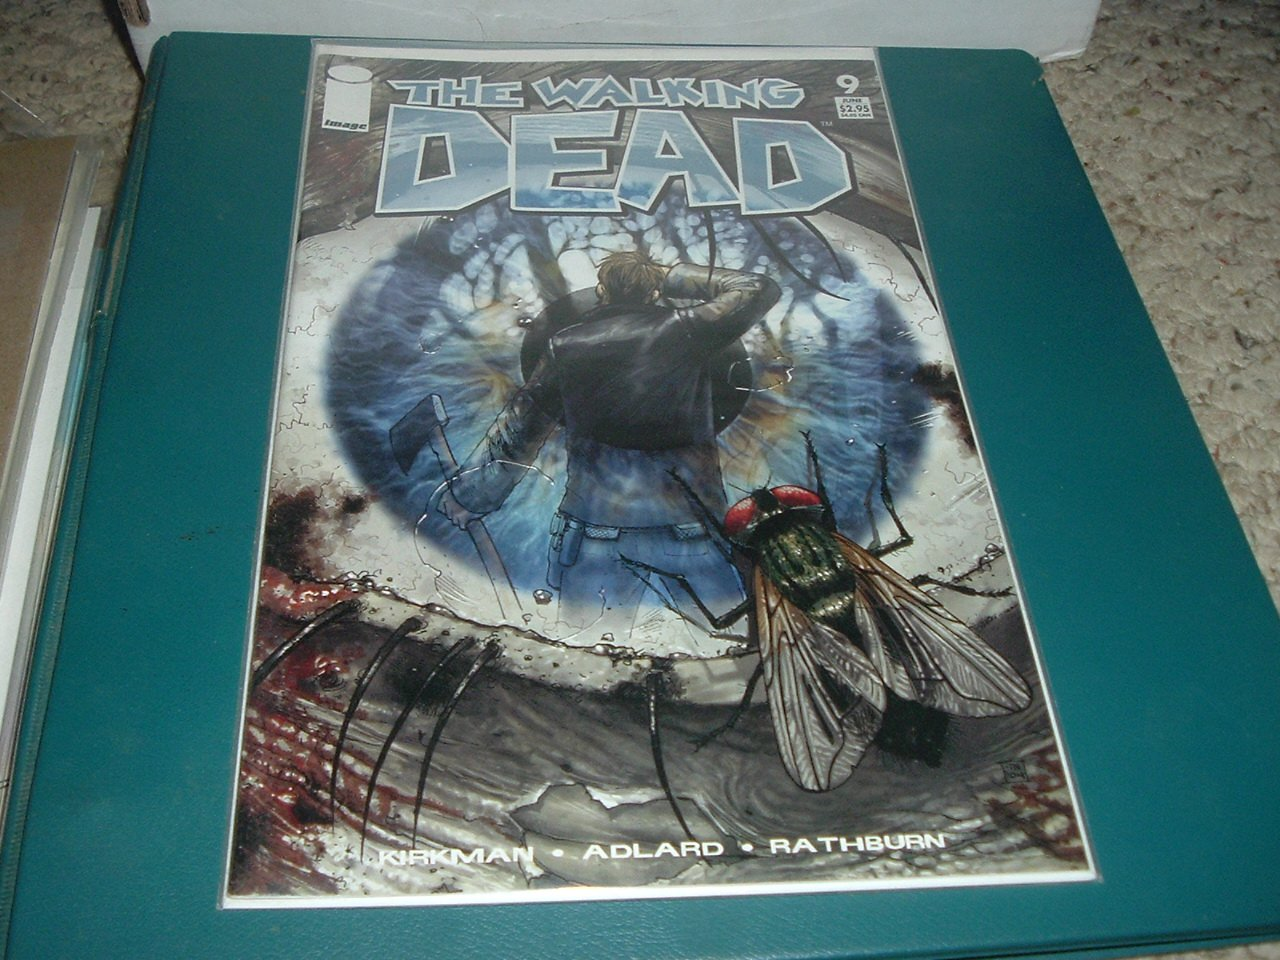 Walking Dead #9 NEAR MINT- FIRST PRINT Image Comics 2004 Kirkman, Save $ Shipping Special, for sale